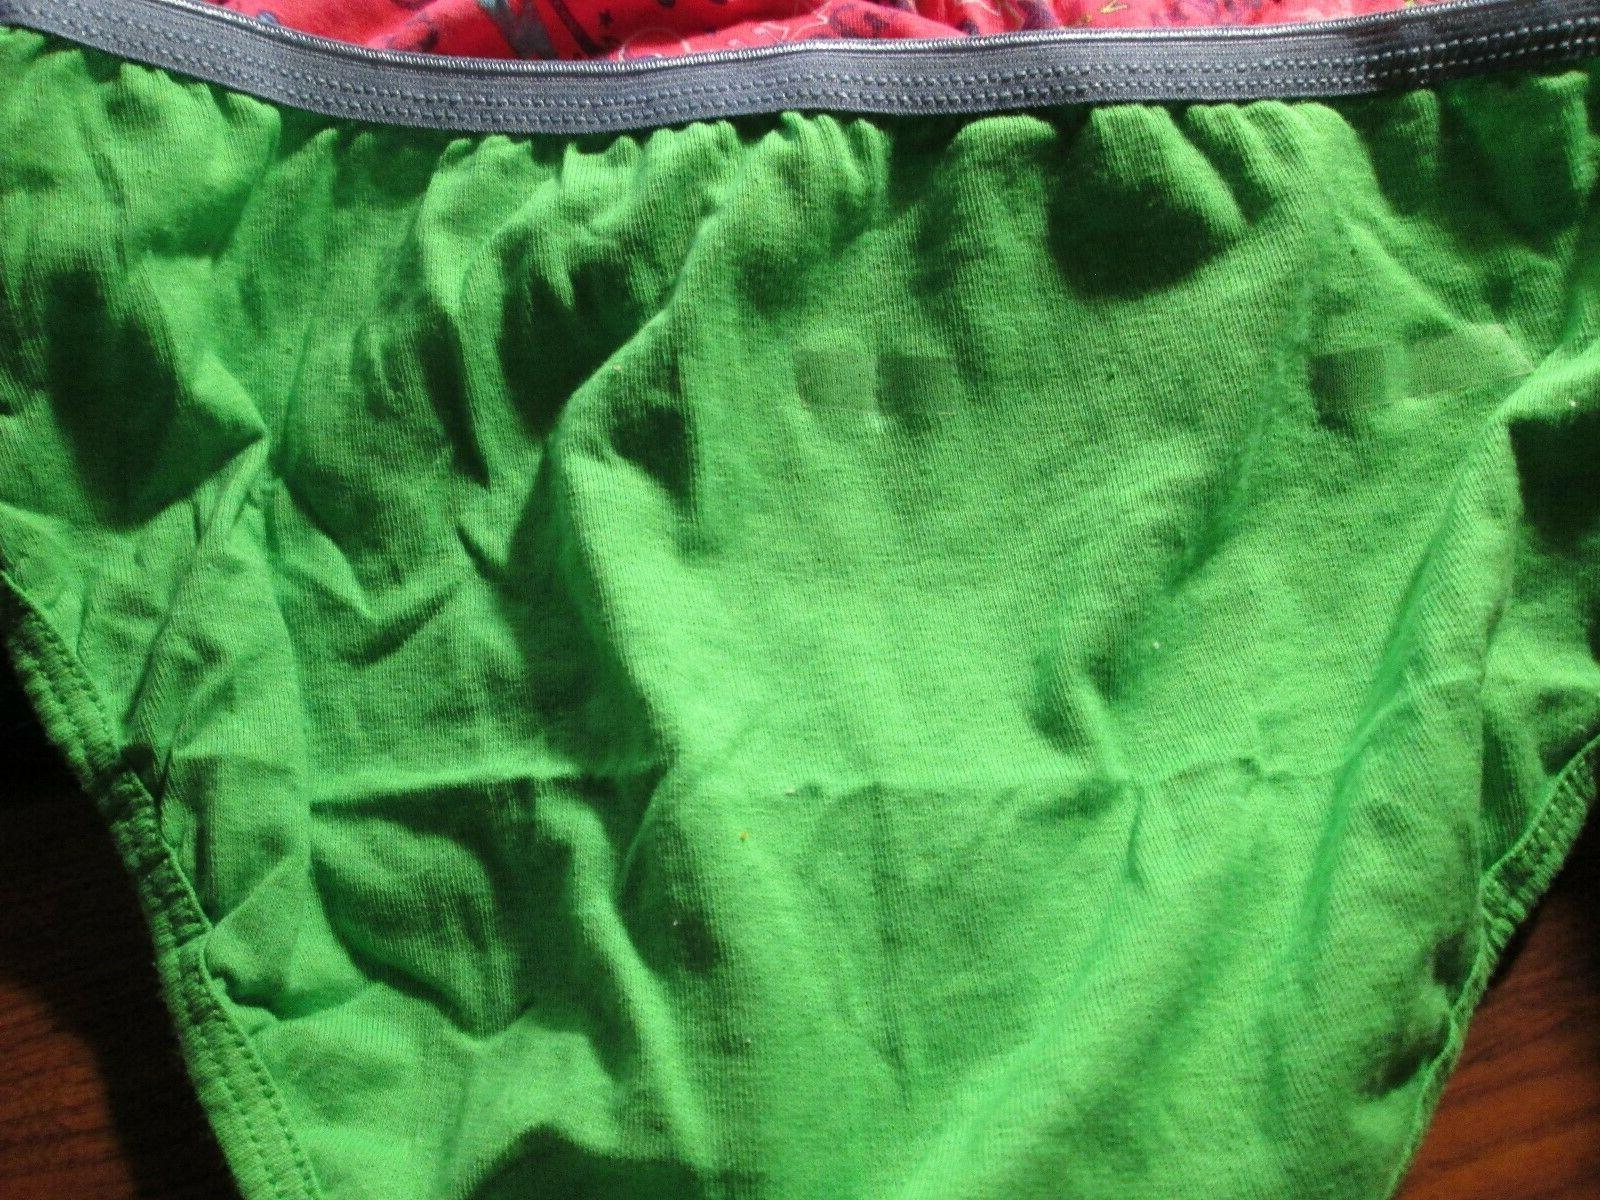 New Girls 3 Pair Size 16 Cute Rock/Shades/Green